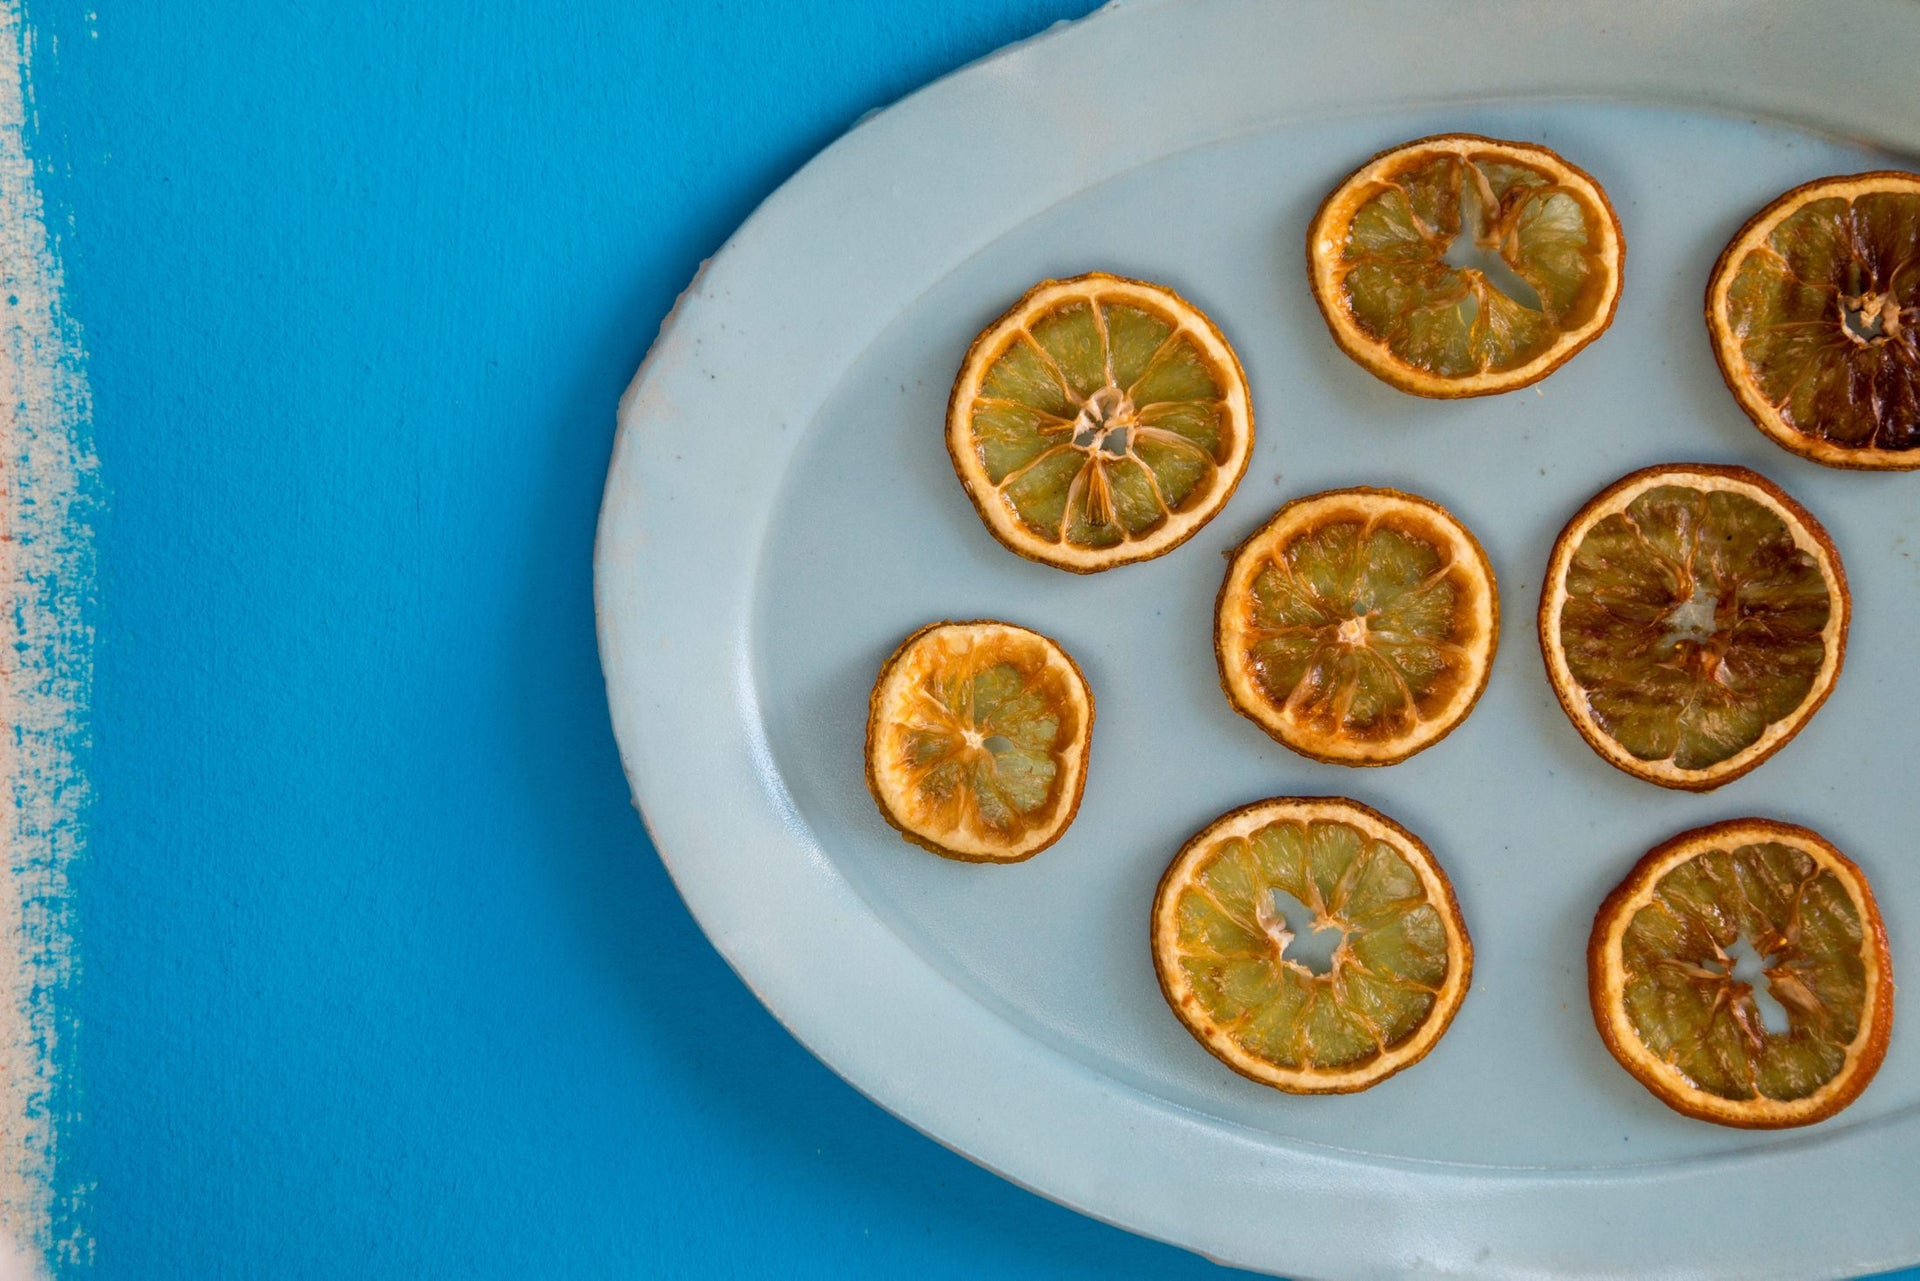 Dried and sugared lemons.